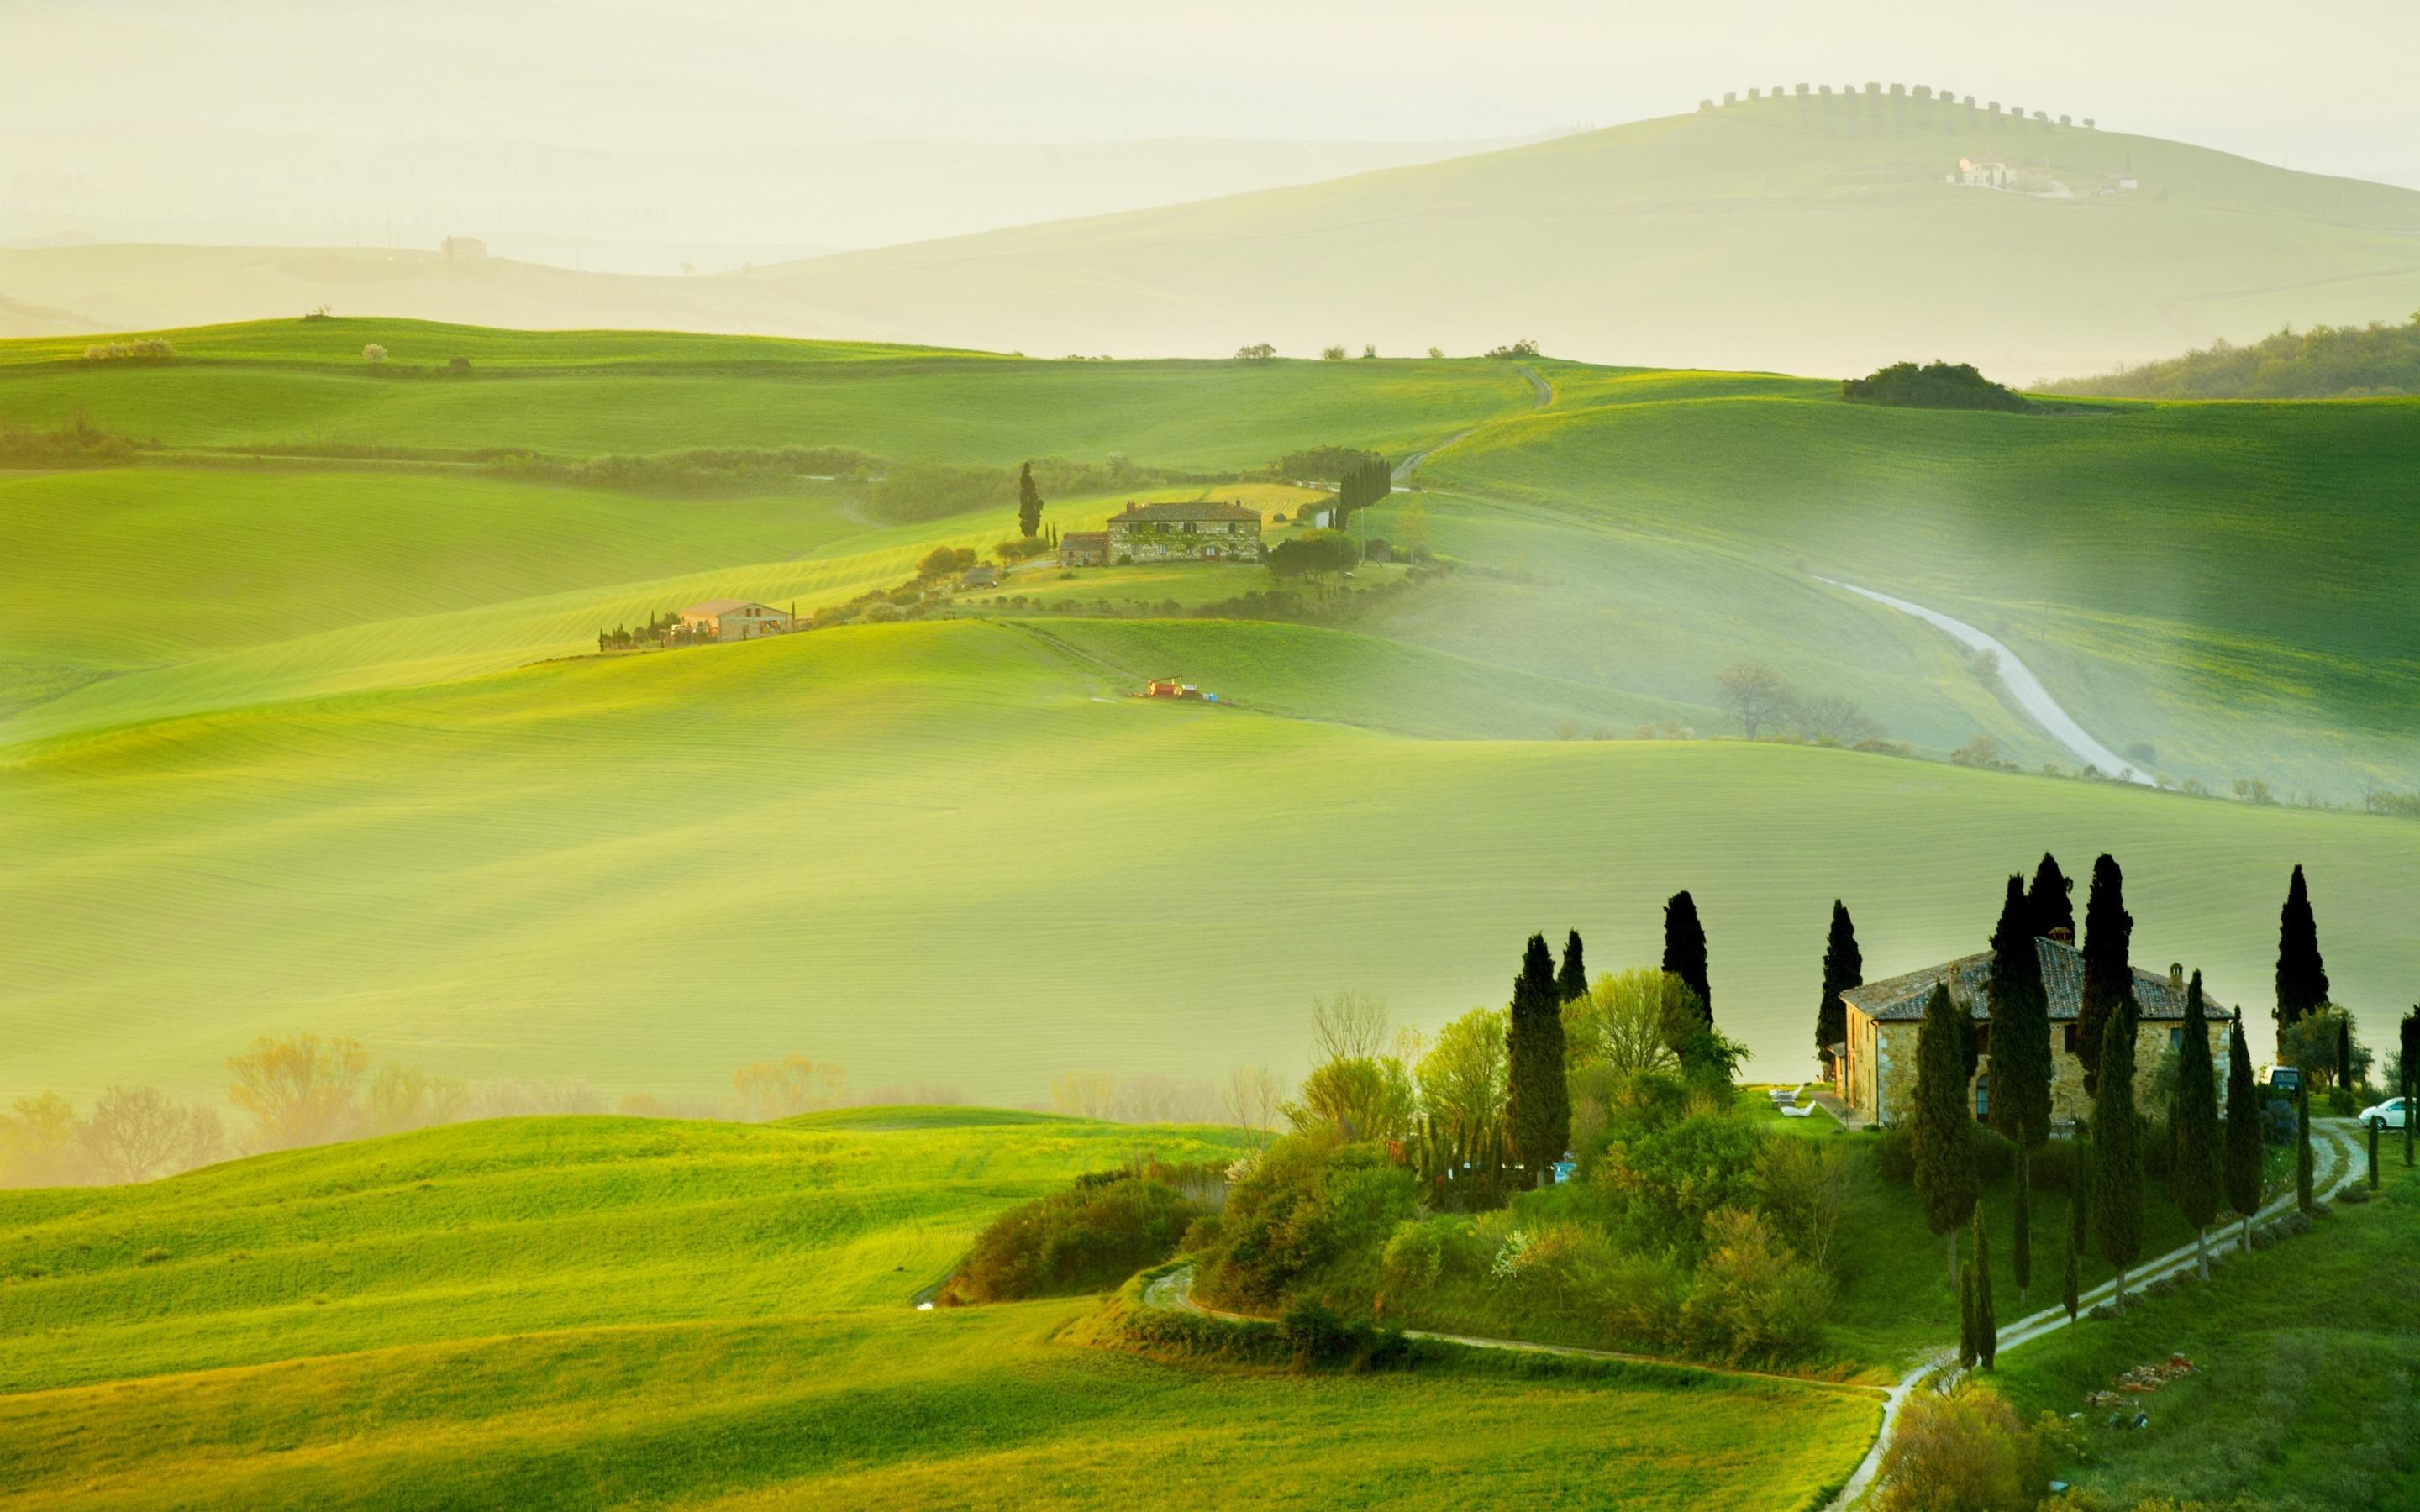 Wallpaper Tuscany, countryside, Italy, nature, trees, green fields ...